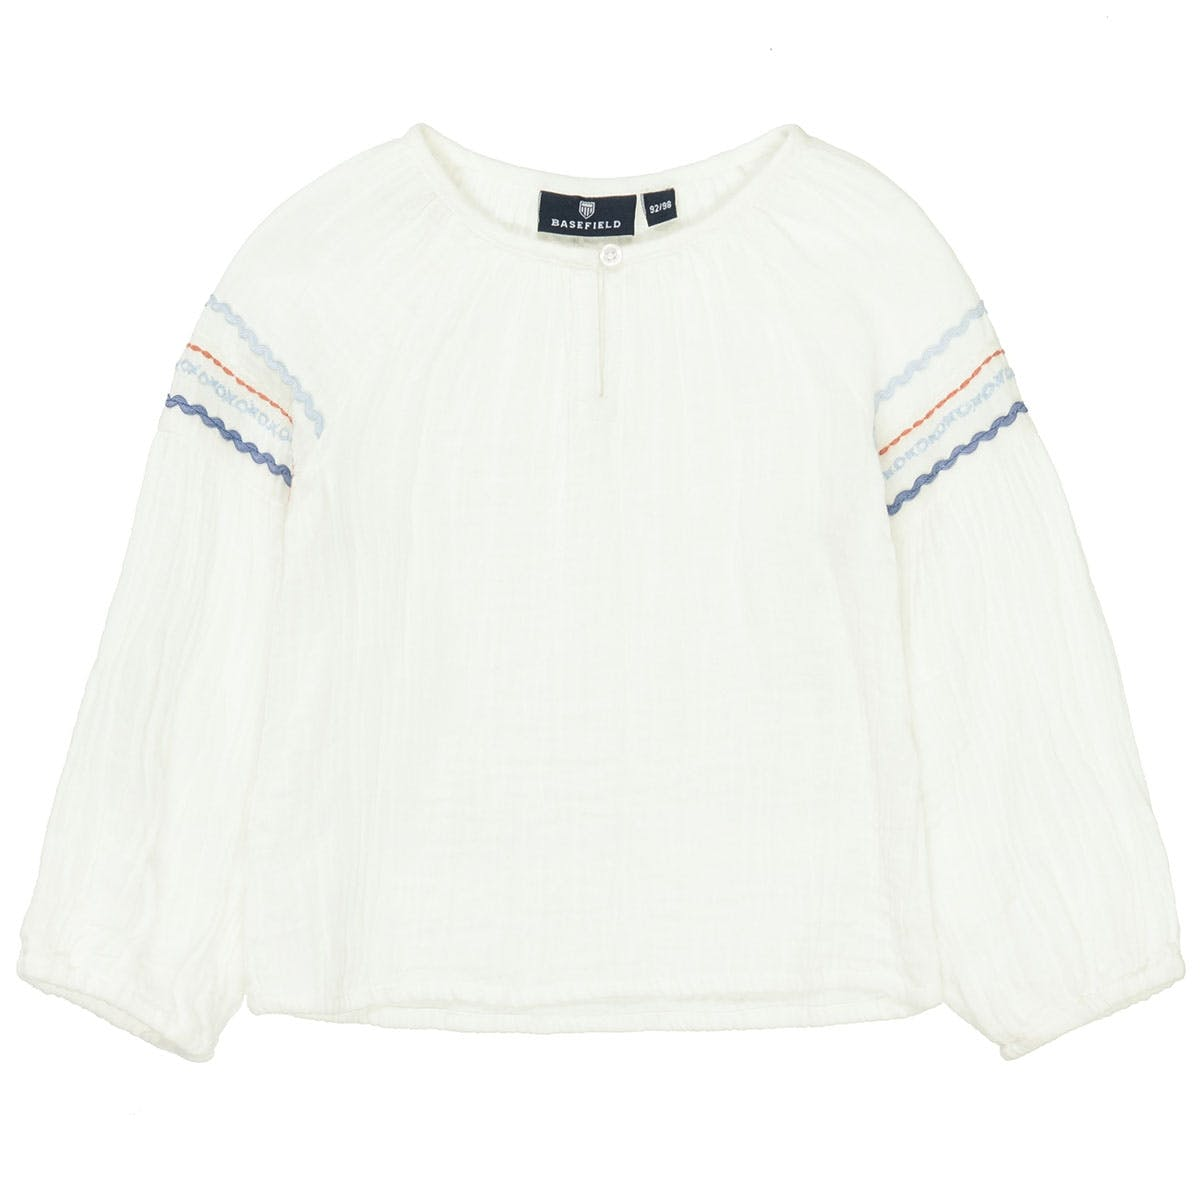 BASEFIELD Bluse - Offwhite